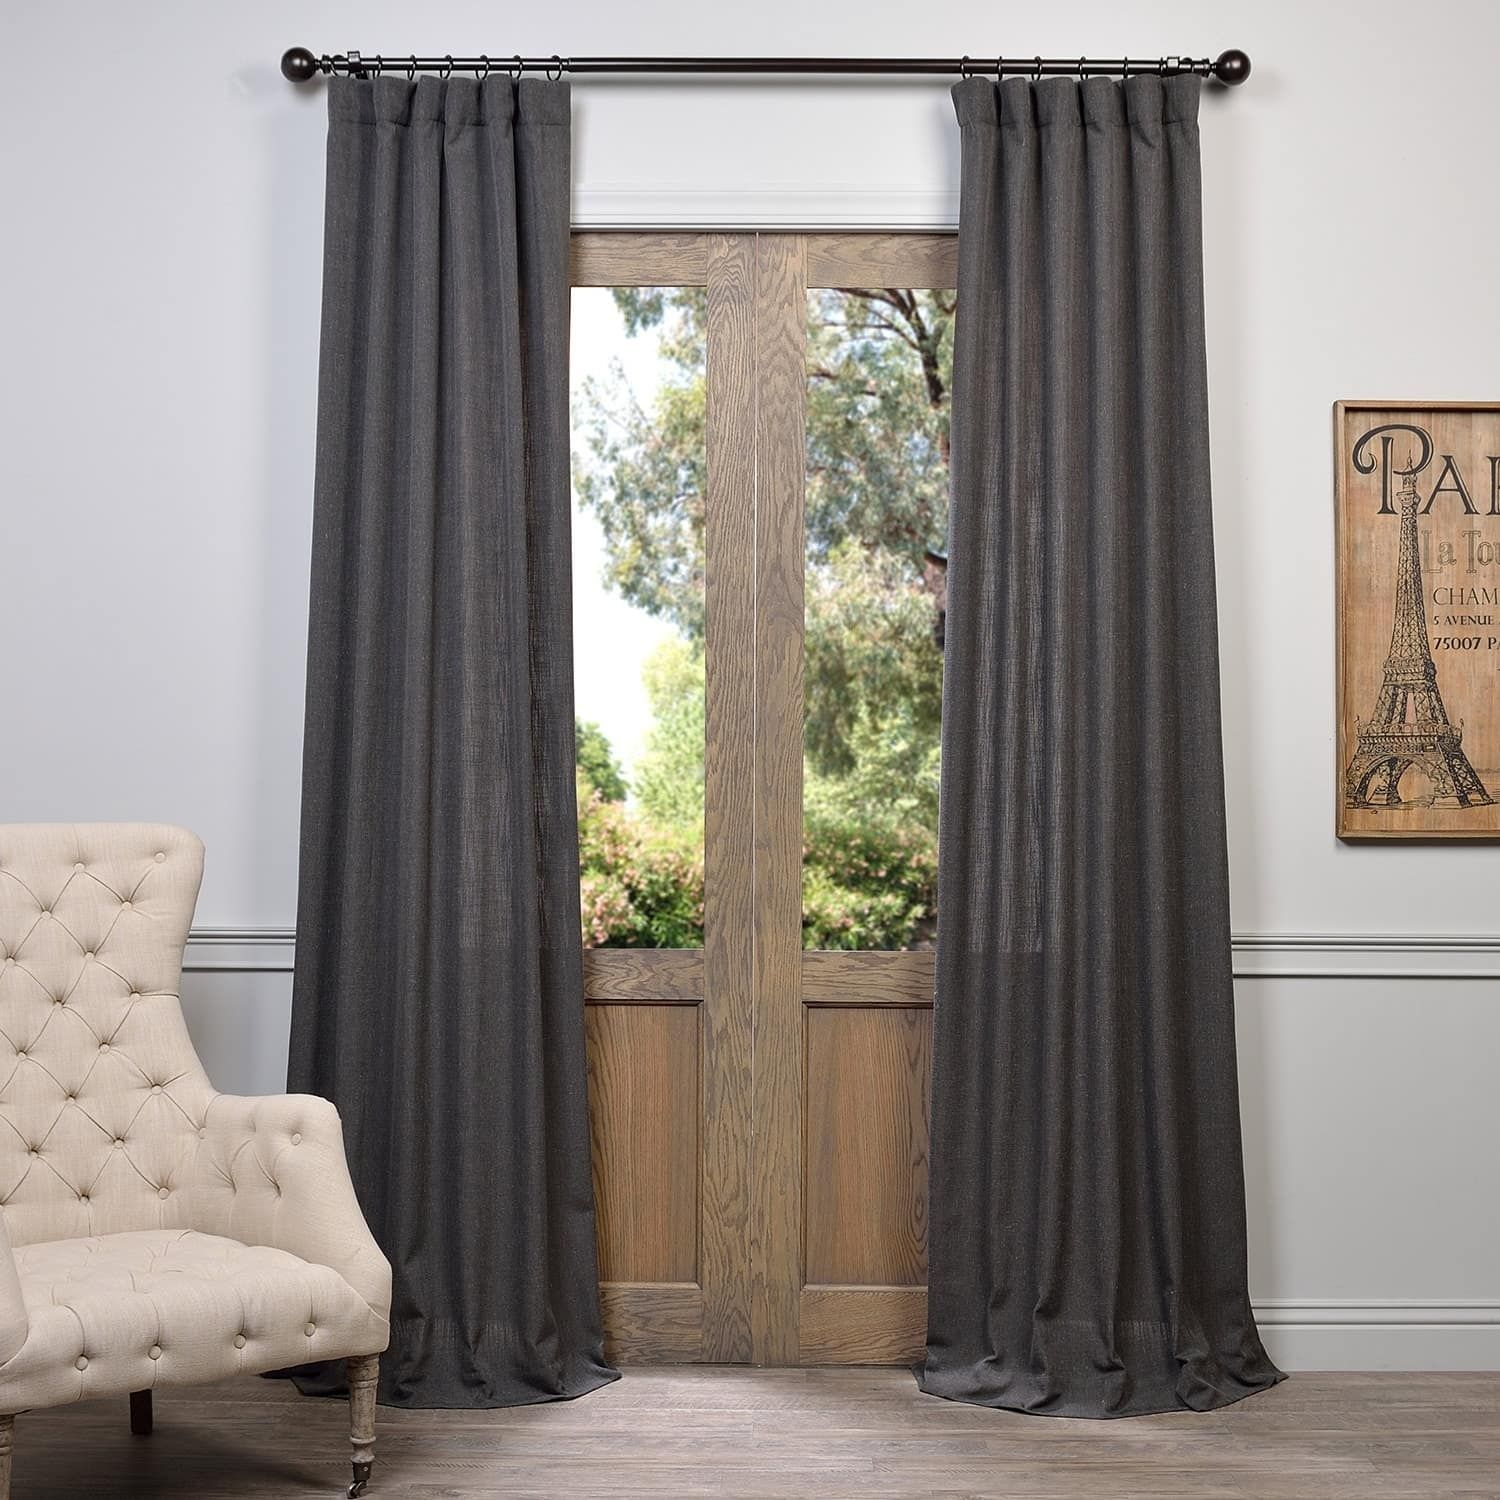 Heavy Faux Linen Single Curtain Panel In 2019 | Harmony Regarding Heavy Faux Linen Single Curtain Panels (View 5 of 20)